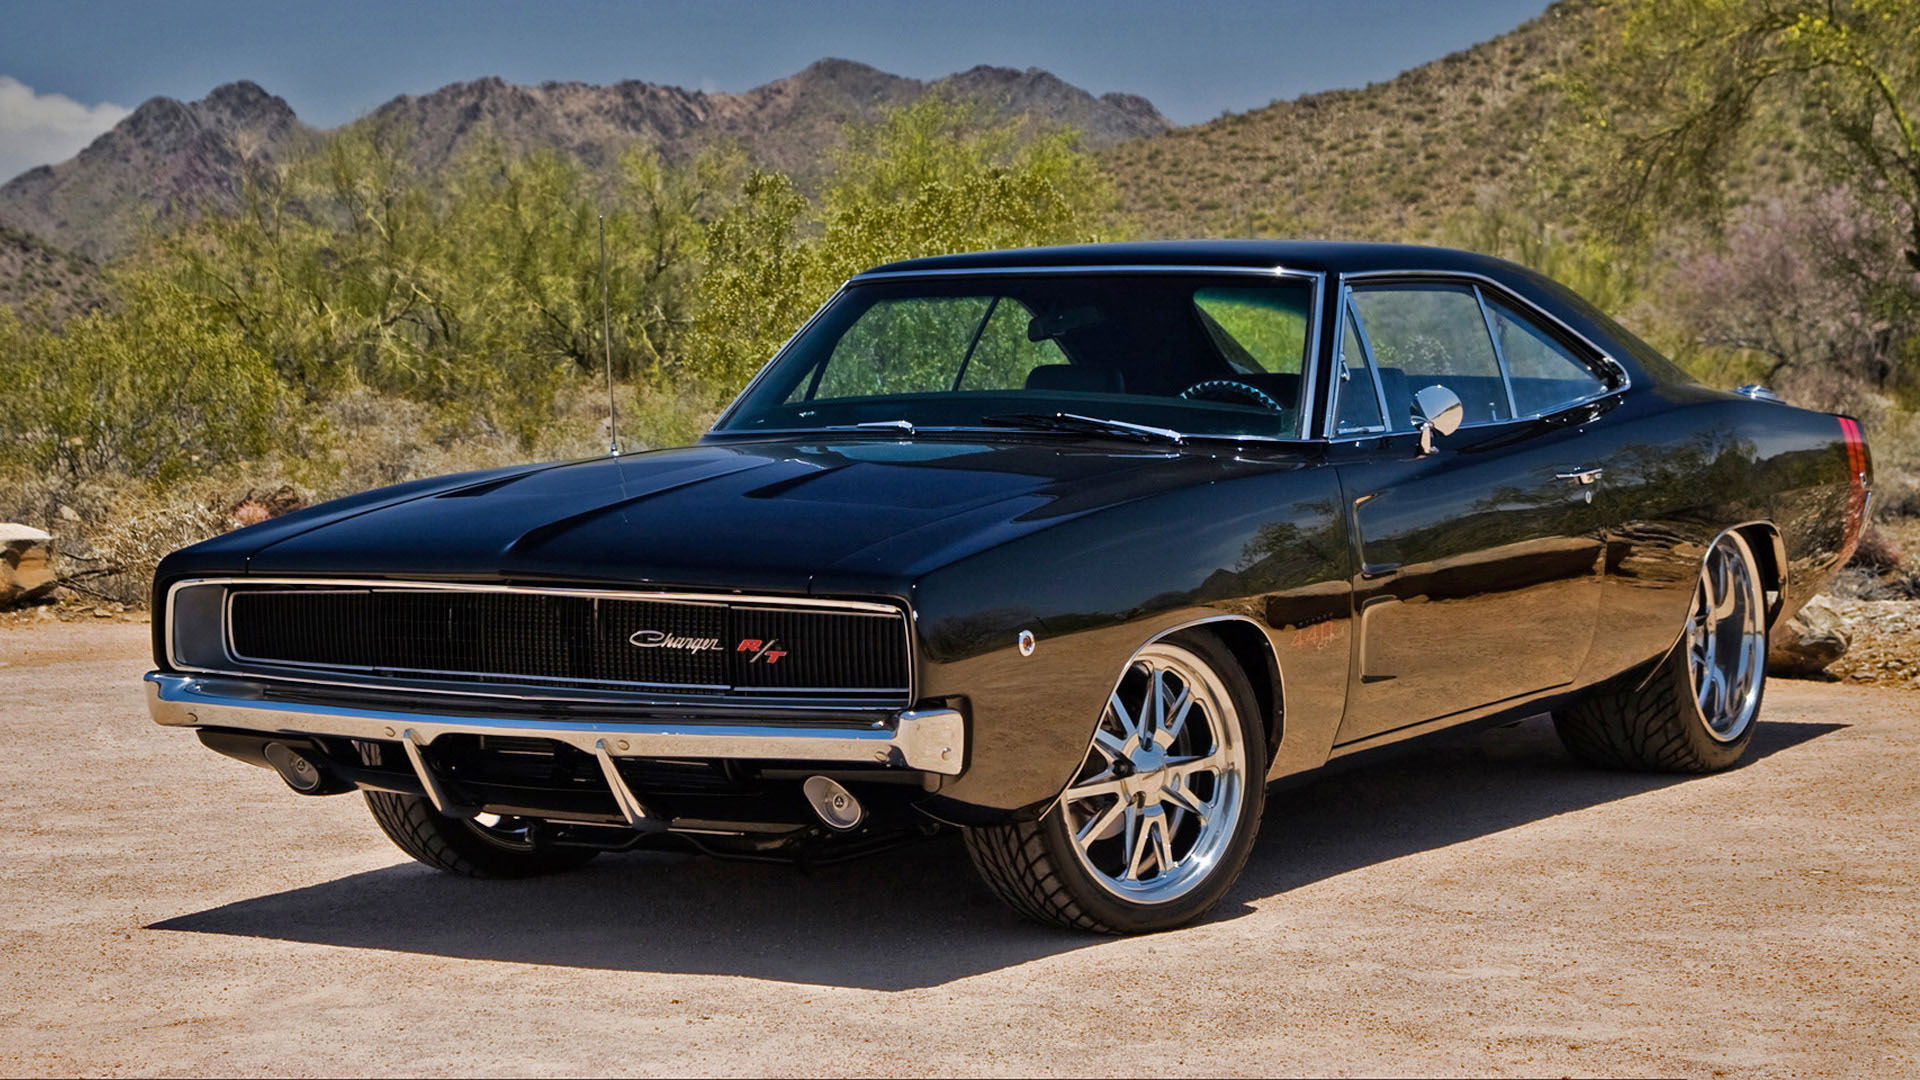 charger-wallhud-com-%C2%BB-Dodge-Charger-HD-wallhud-wallpaper-wp3603992